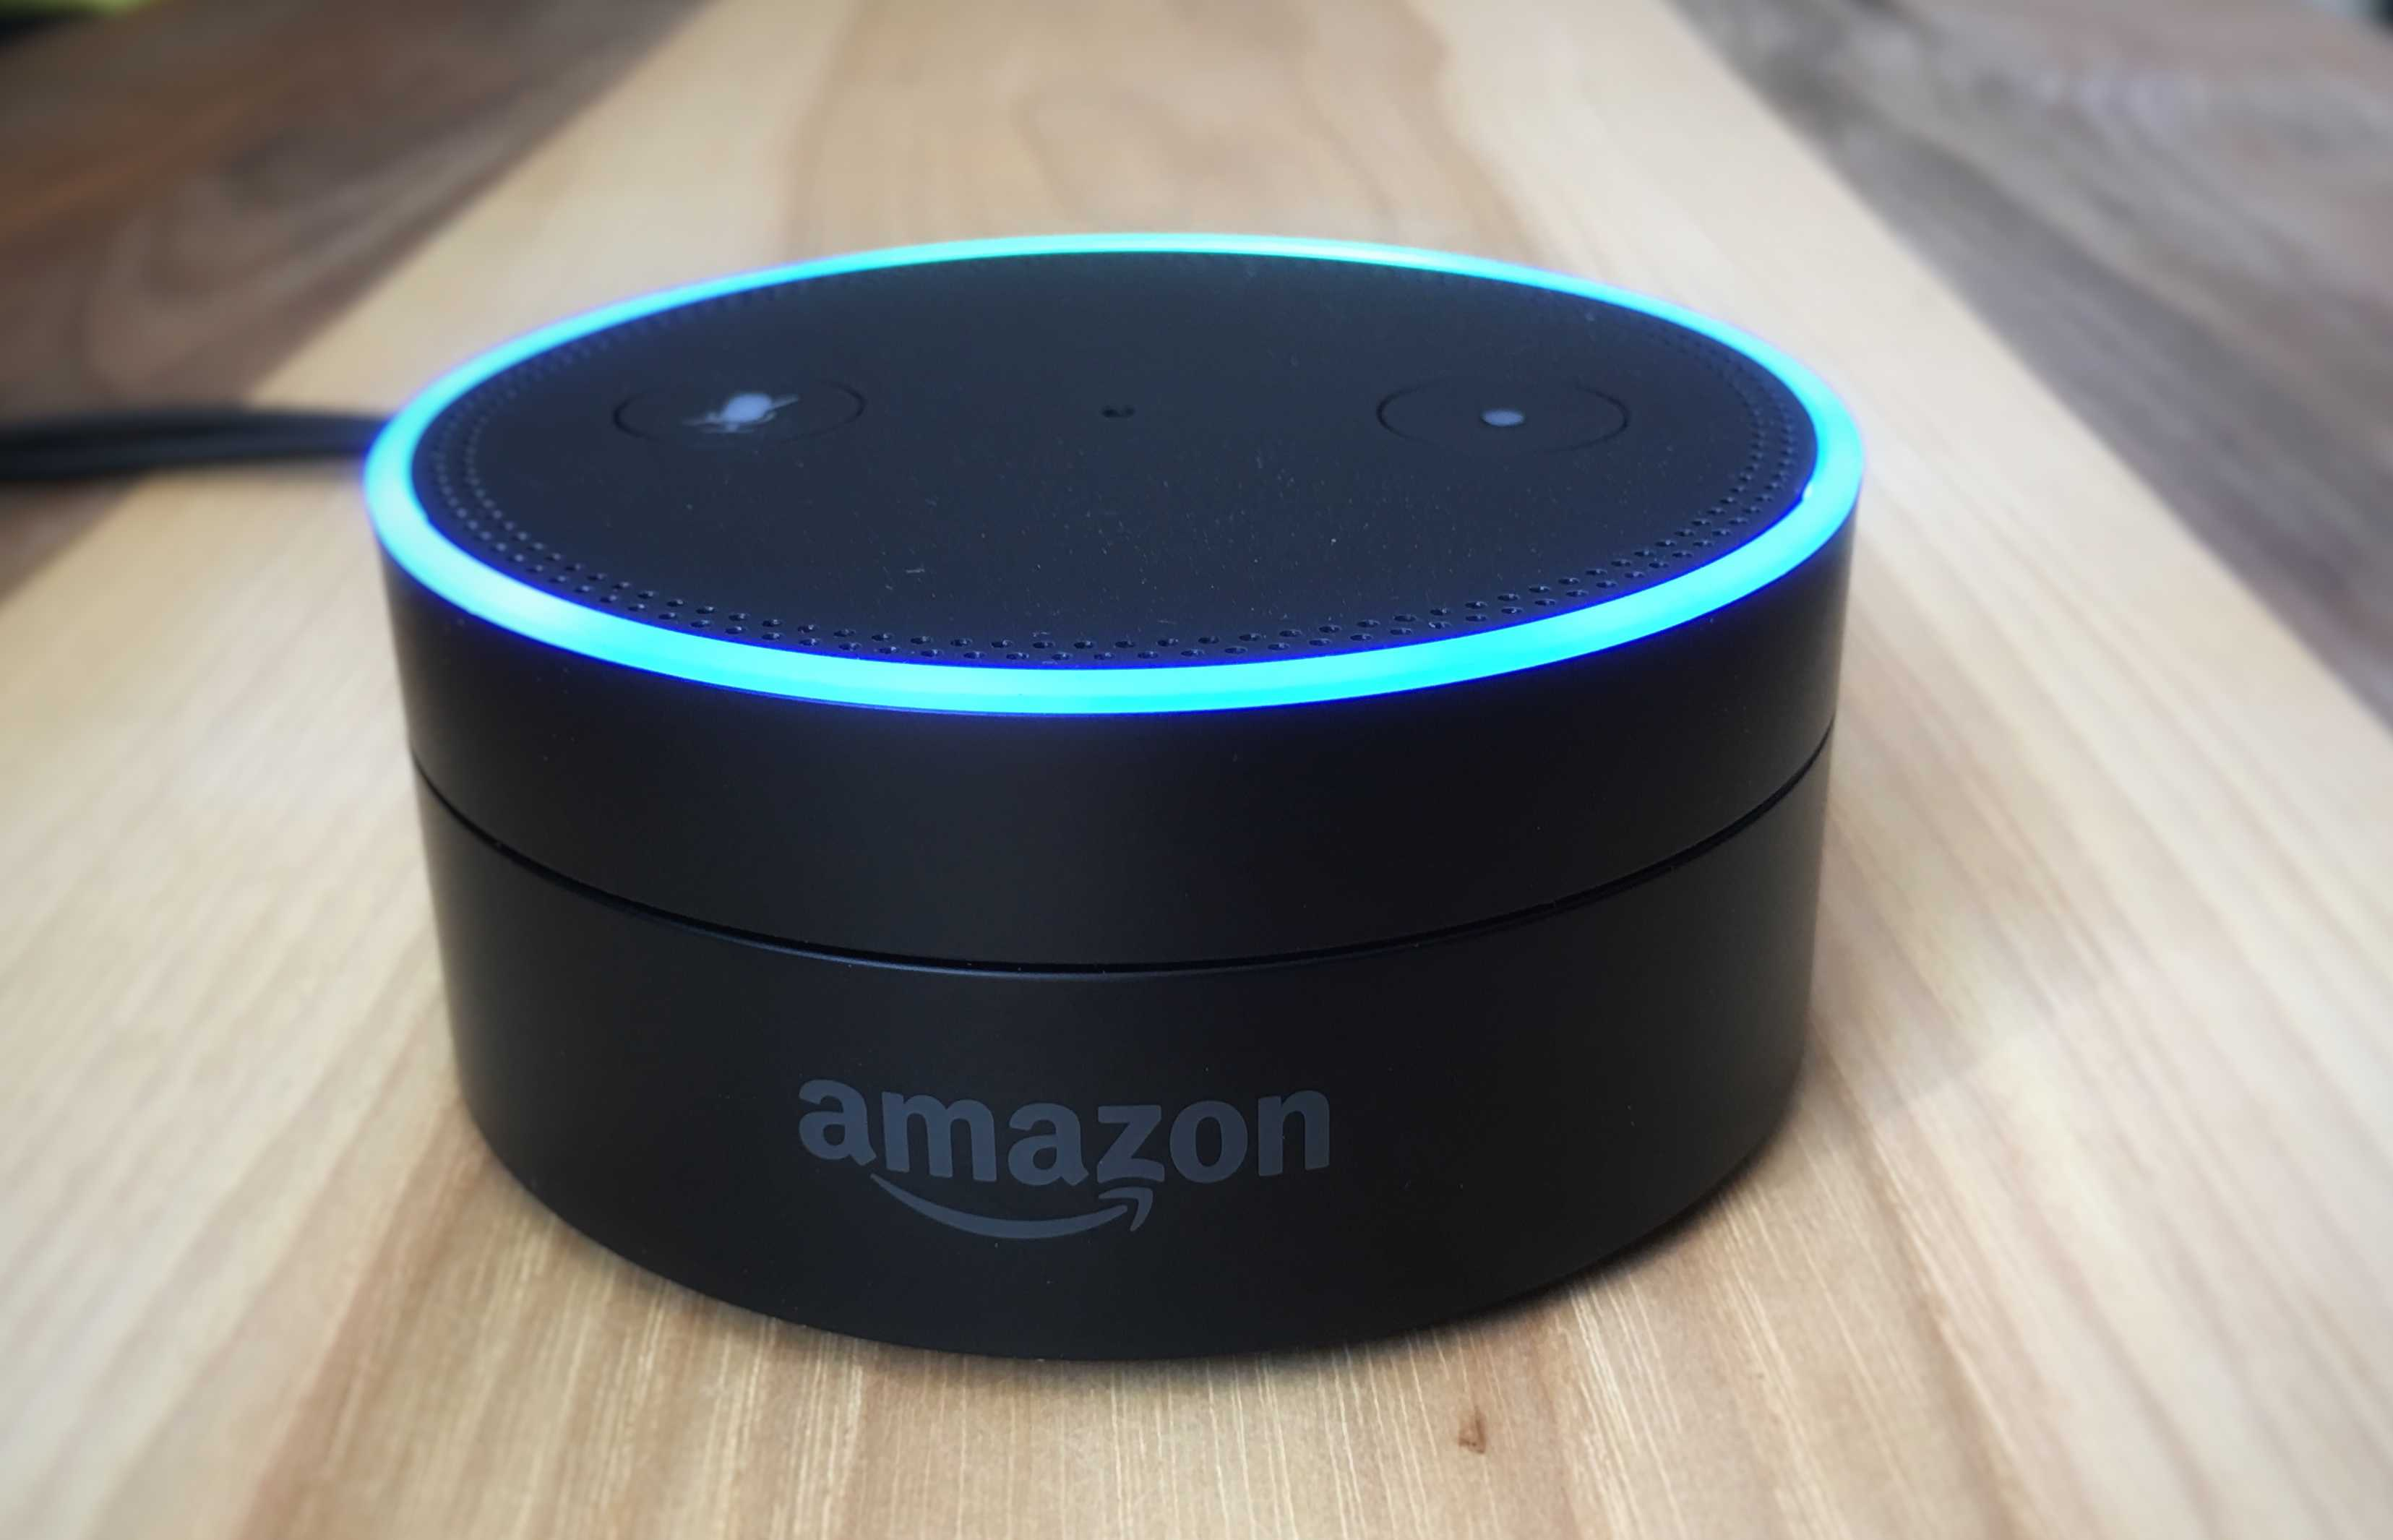 Is The Amazon Echo Dot Compatible With Iphone